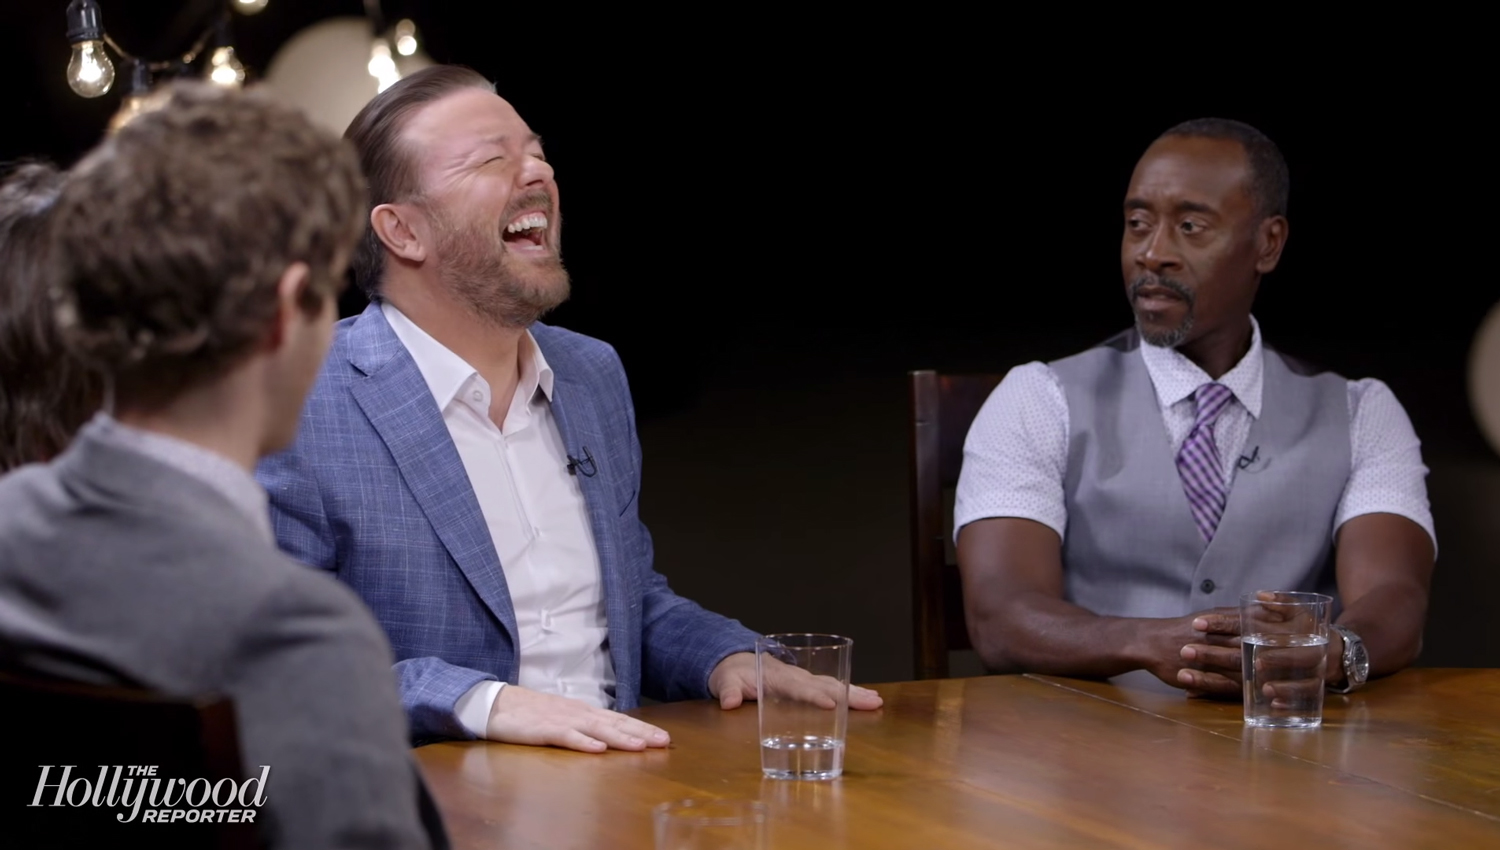 True Hollywood Reporter roundtable discussion. Photo by: THR / YouTube